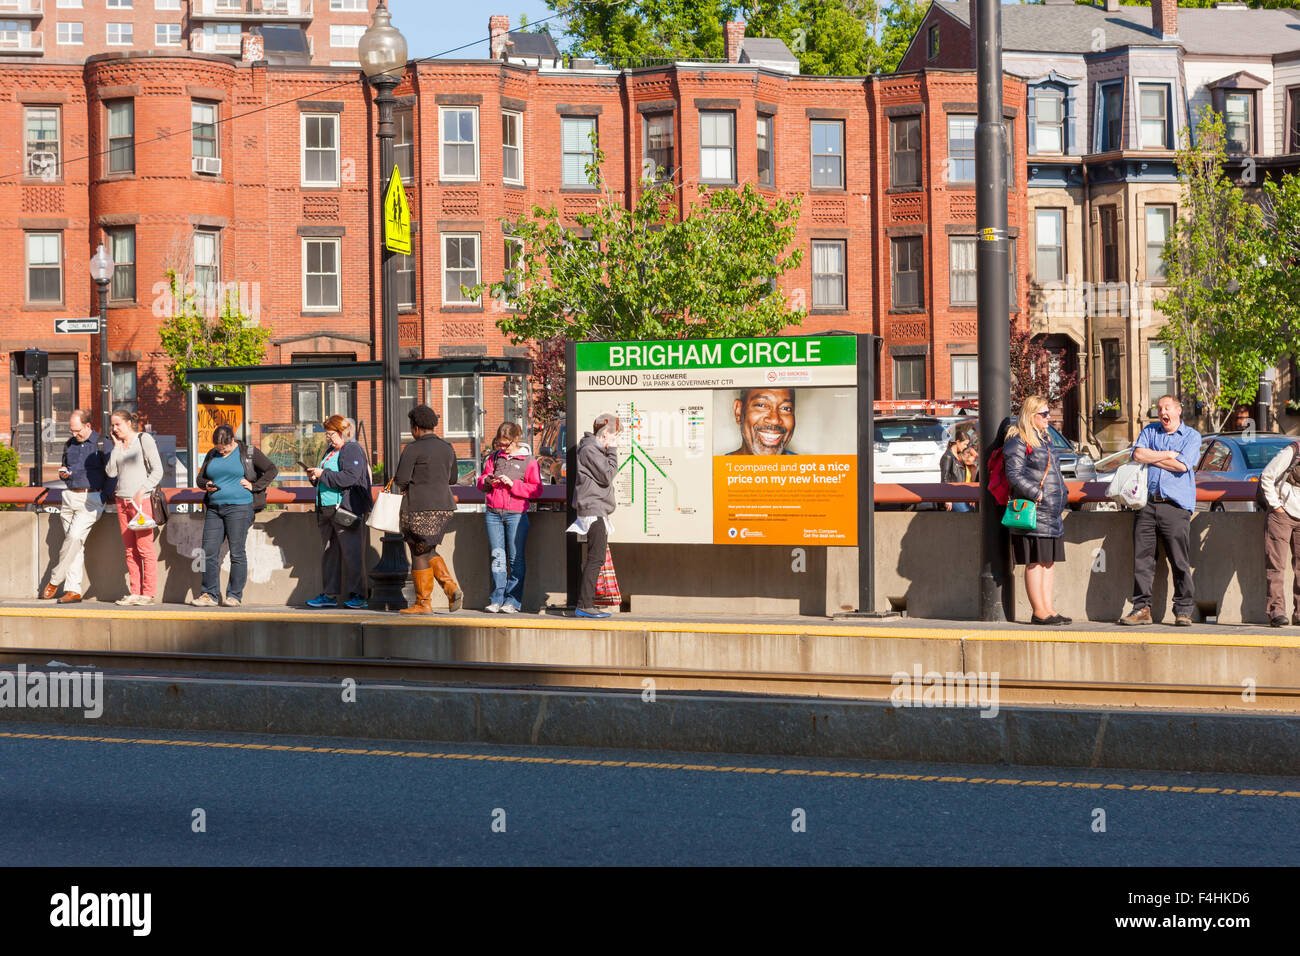 People wait for an inbound train at the Brigham Circle Station on the MBTA Huntington Avenue Line in Boston, Massachusetts. - Stock Image